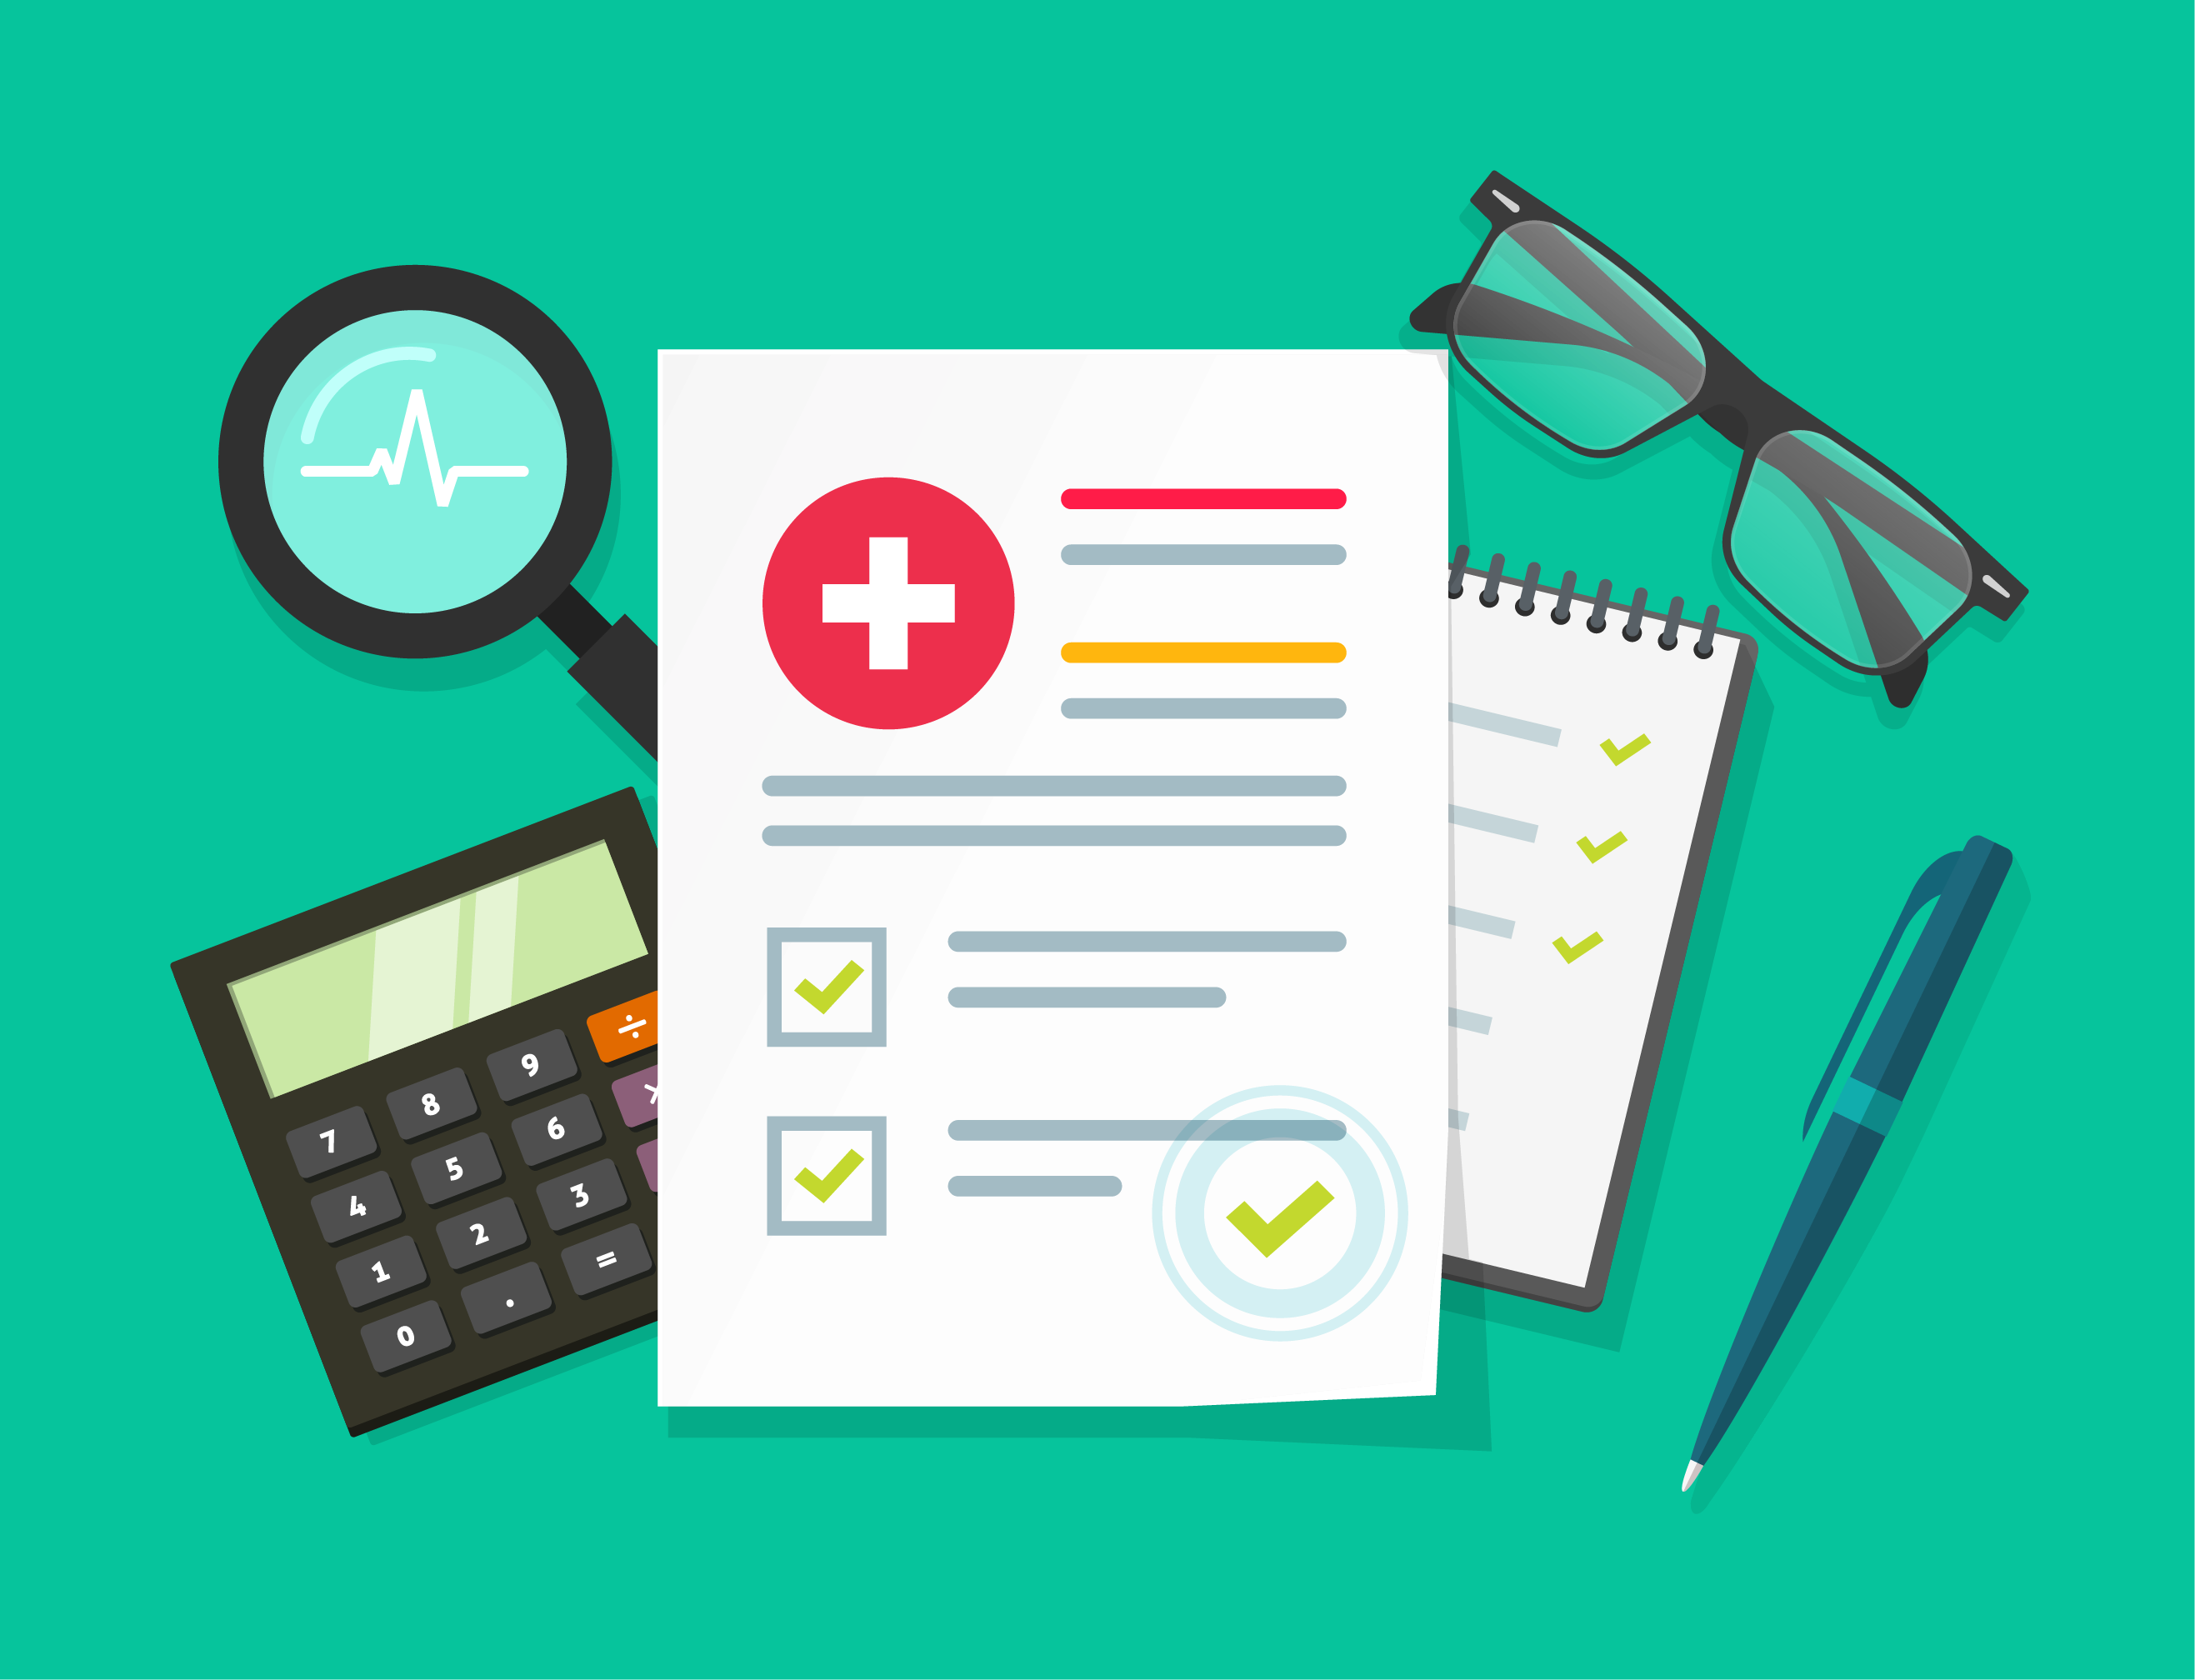 How Epiphany Resolved an Enterprise Hospital's Billing & Order Completion Issue